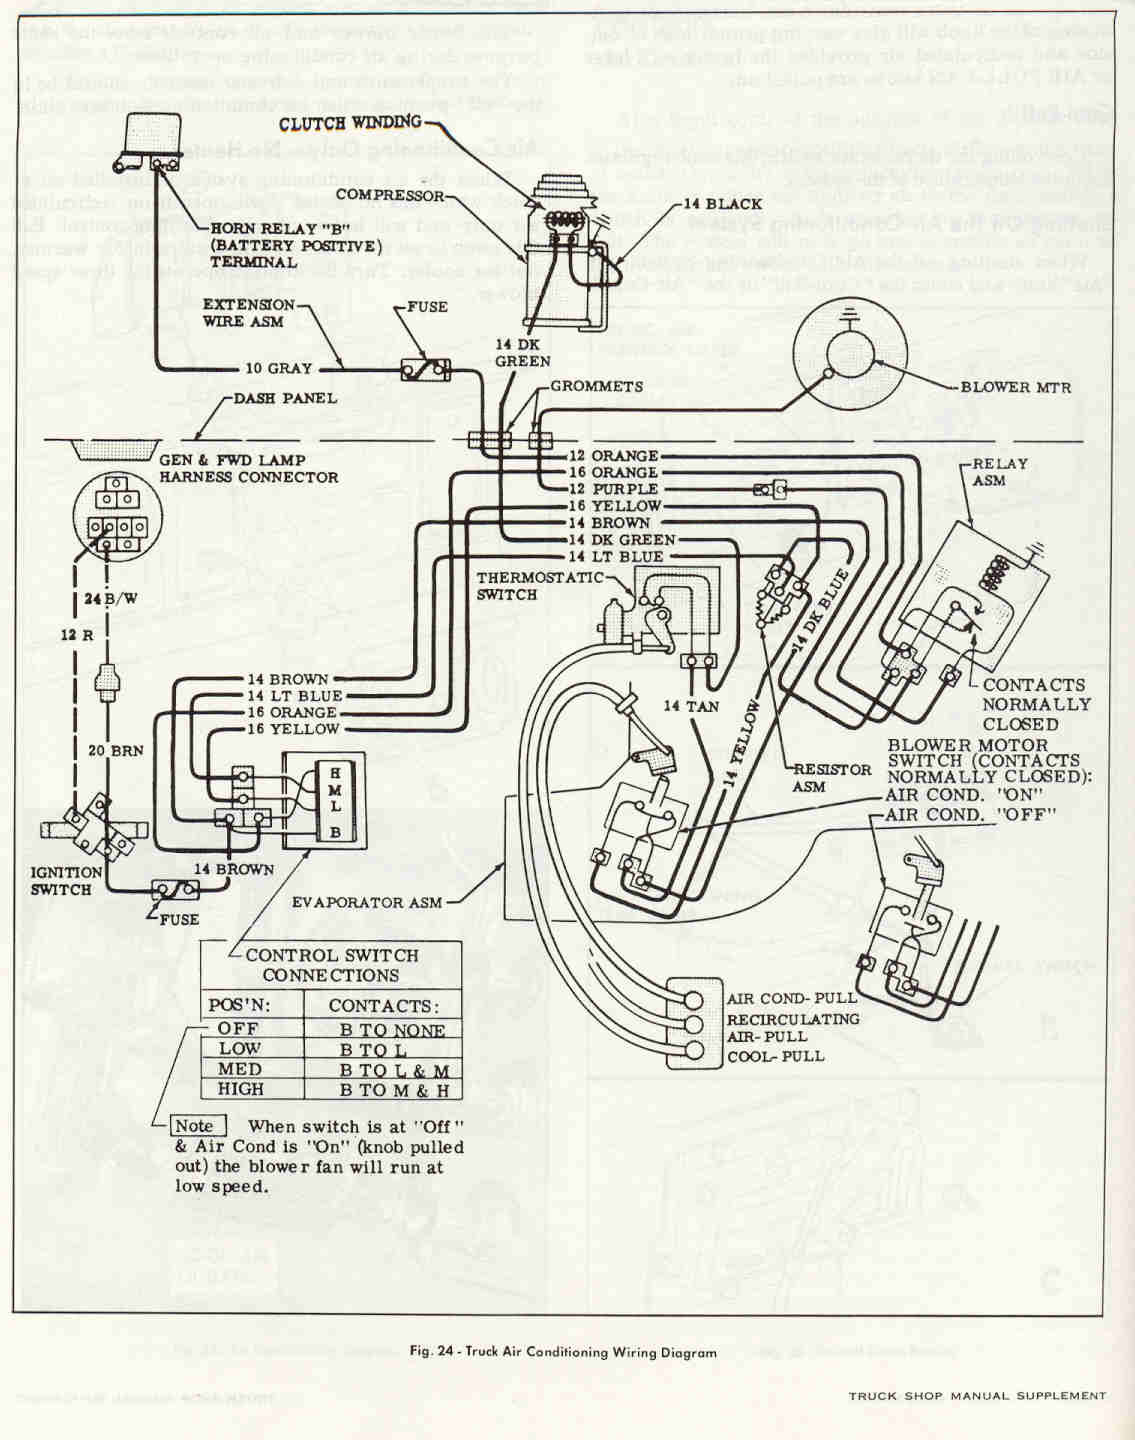 Chevy C10 Wiring Diagram On 1966 C10 Chevy Truck Wiring